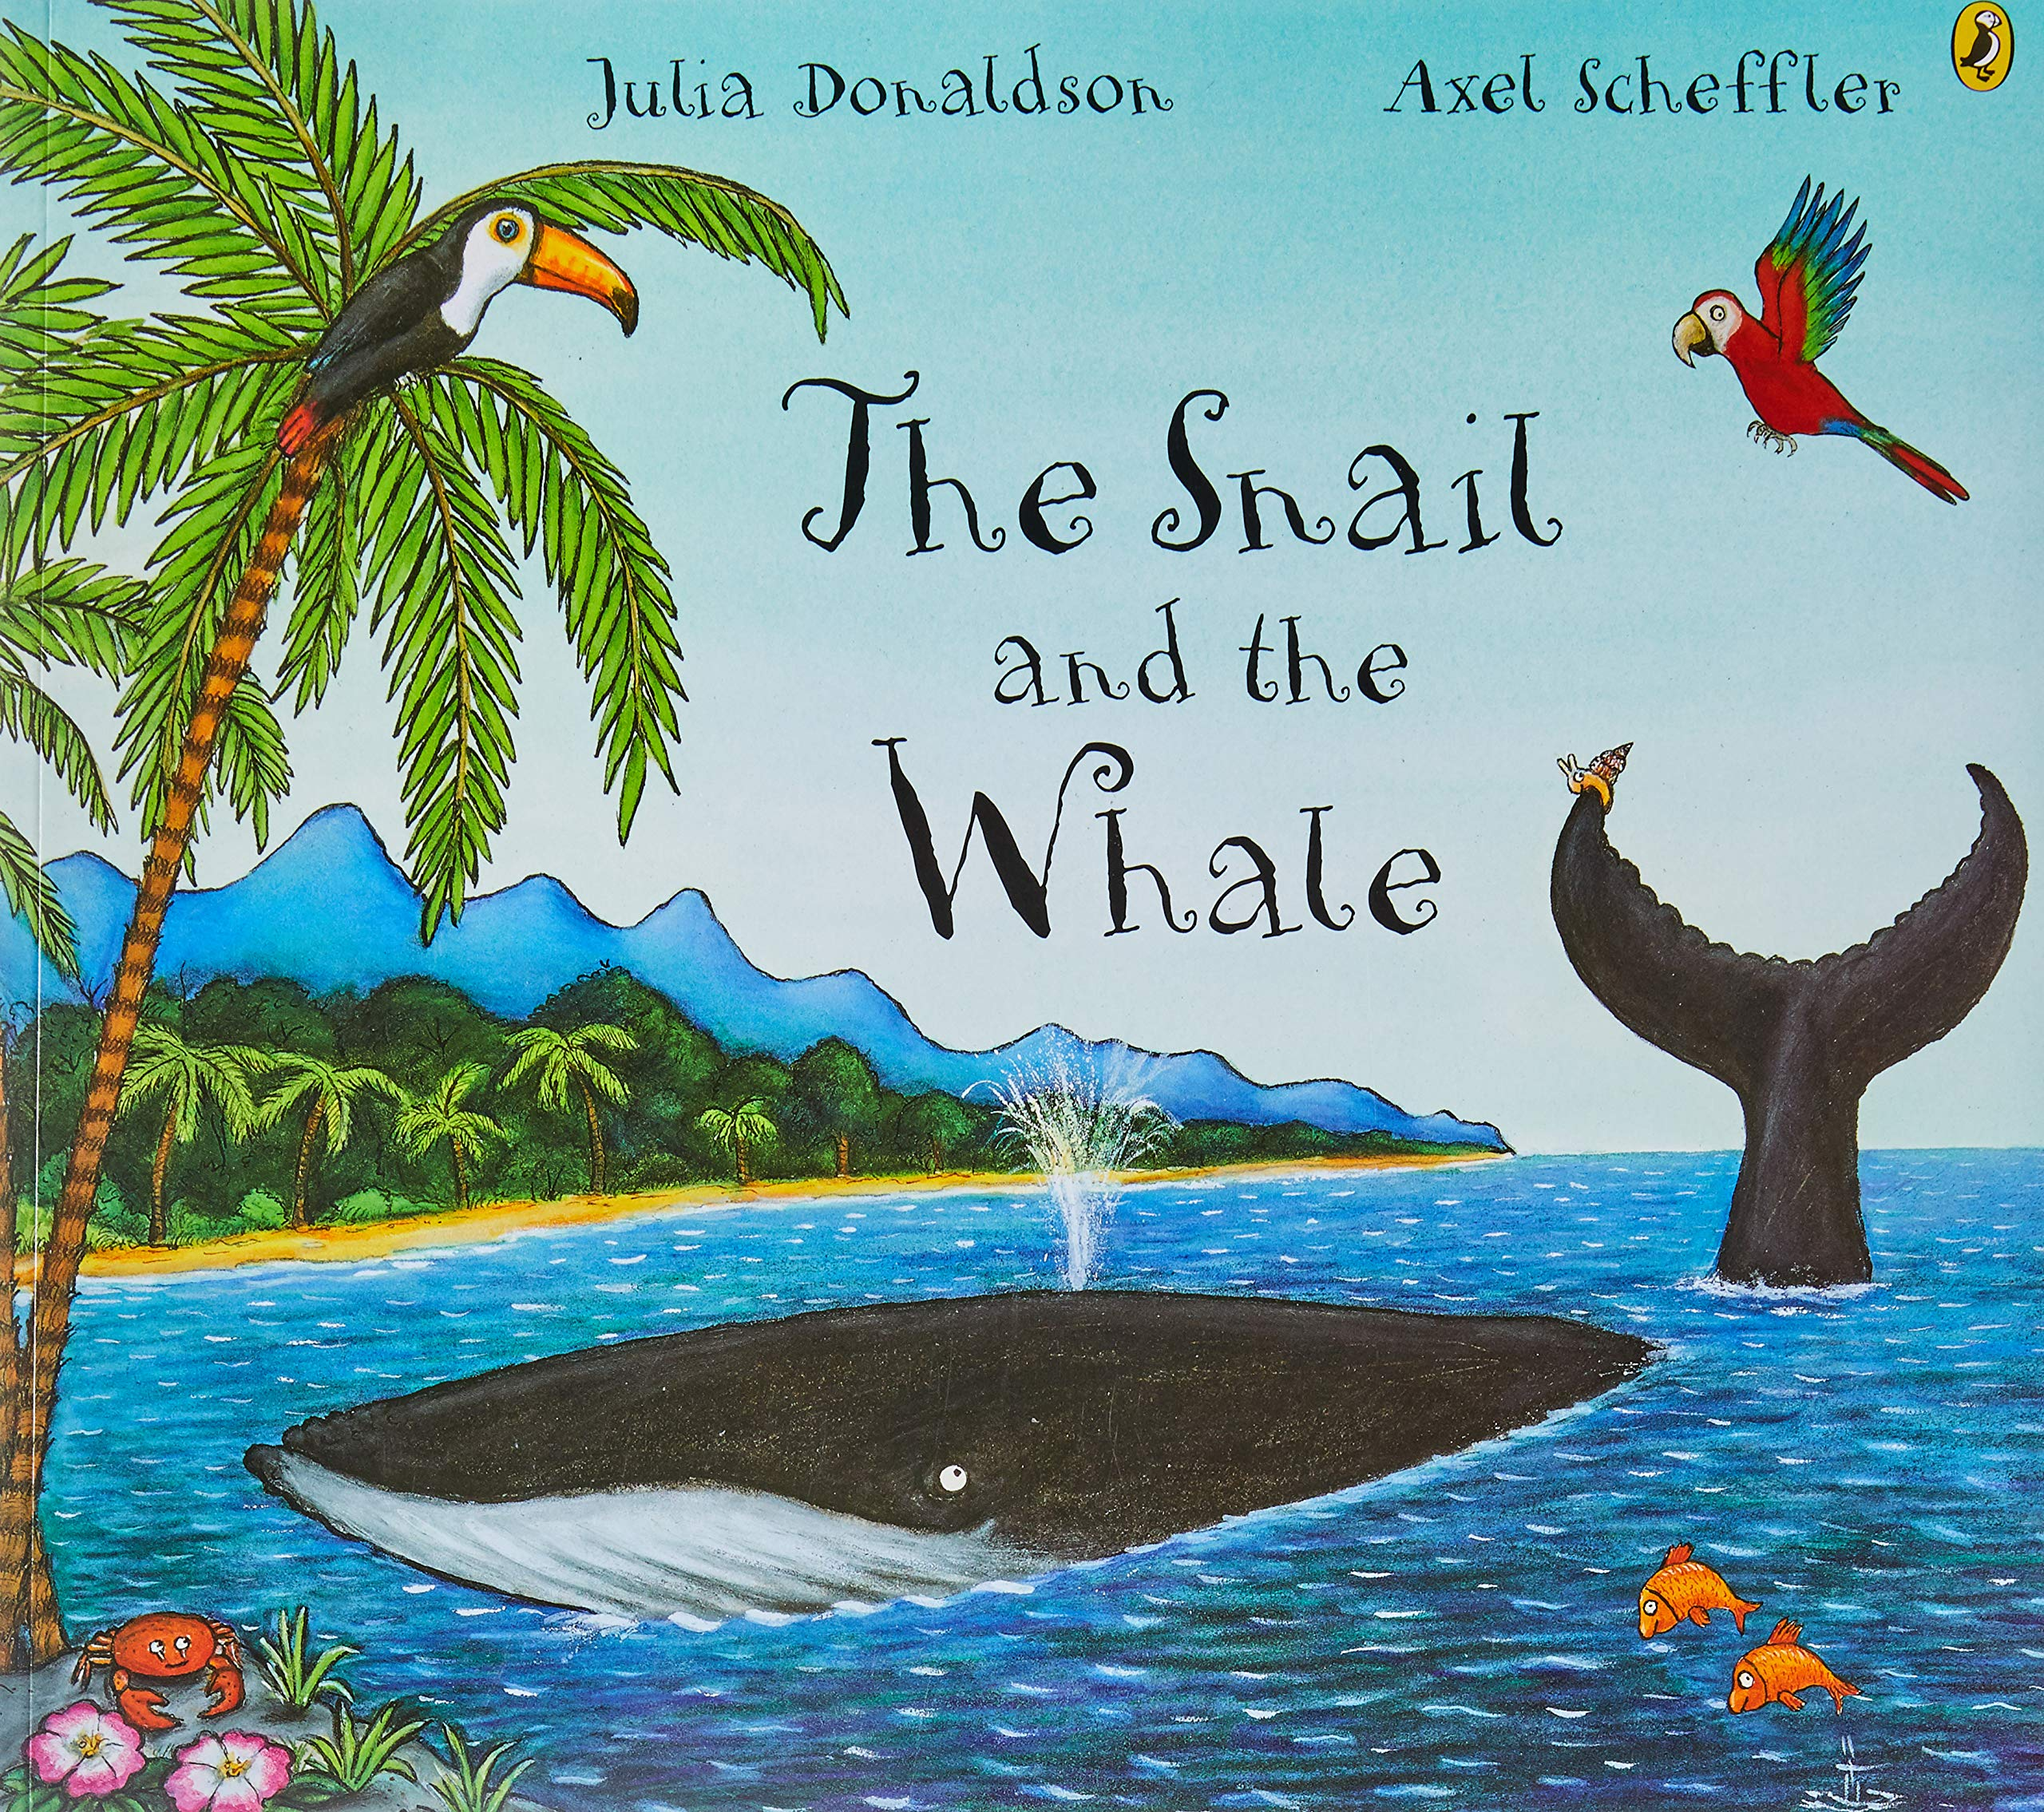 The Snail and the Whale: Amazon.co.uk: Julia Donaldson: Books